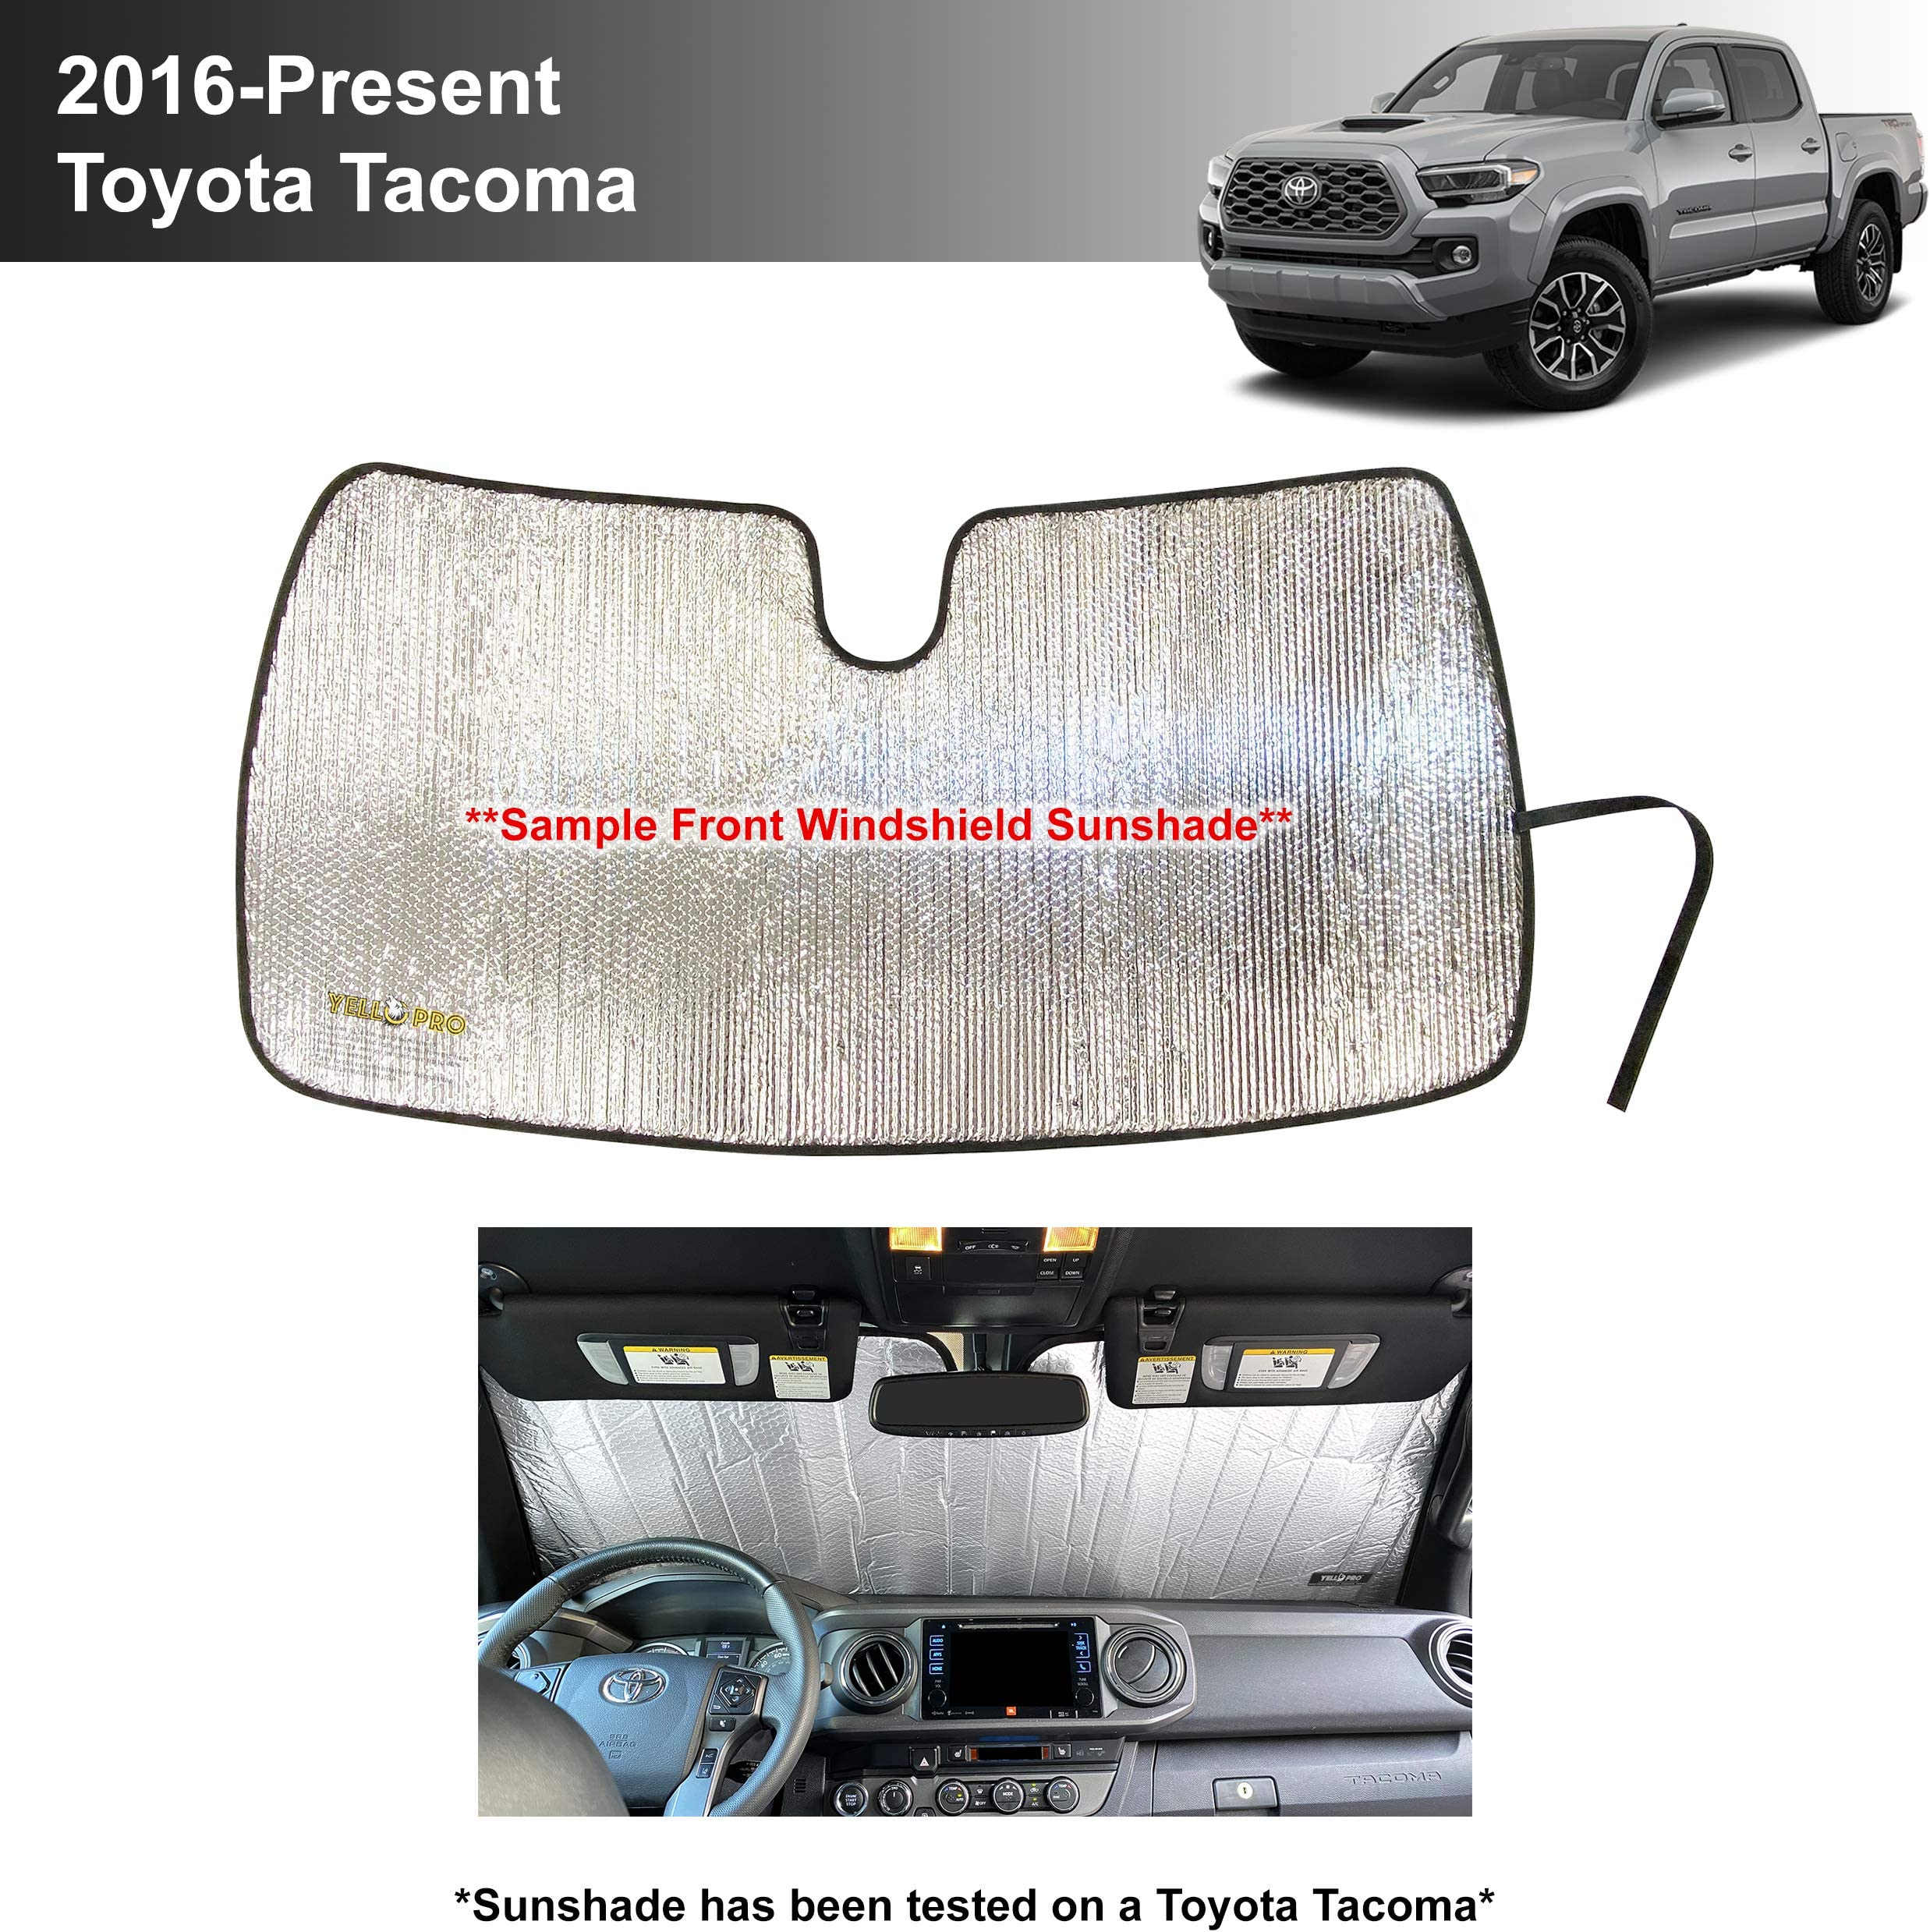 YelloPro Custom Fit Reflective Windshield Sunshade for 2016 2017 2018 2019 2020 2021 Toyota Tacoma, TRD Off-Road, SR, SR5, TRD Sport, TRD Pro, Limited 2Dr 4Dr Pickup, Accessories UV Reflector